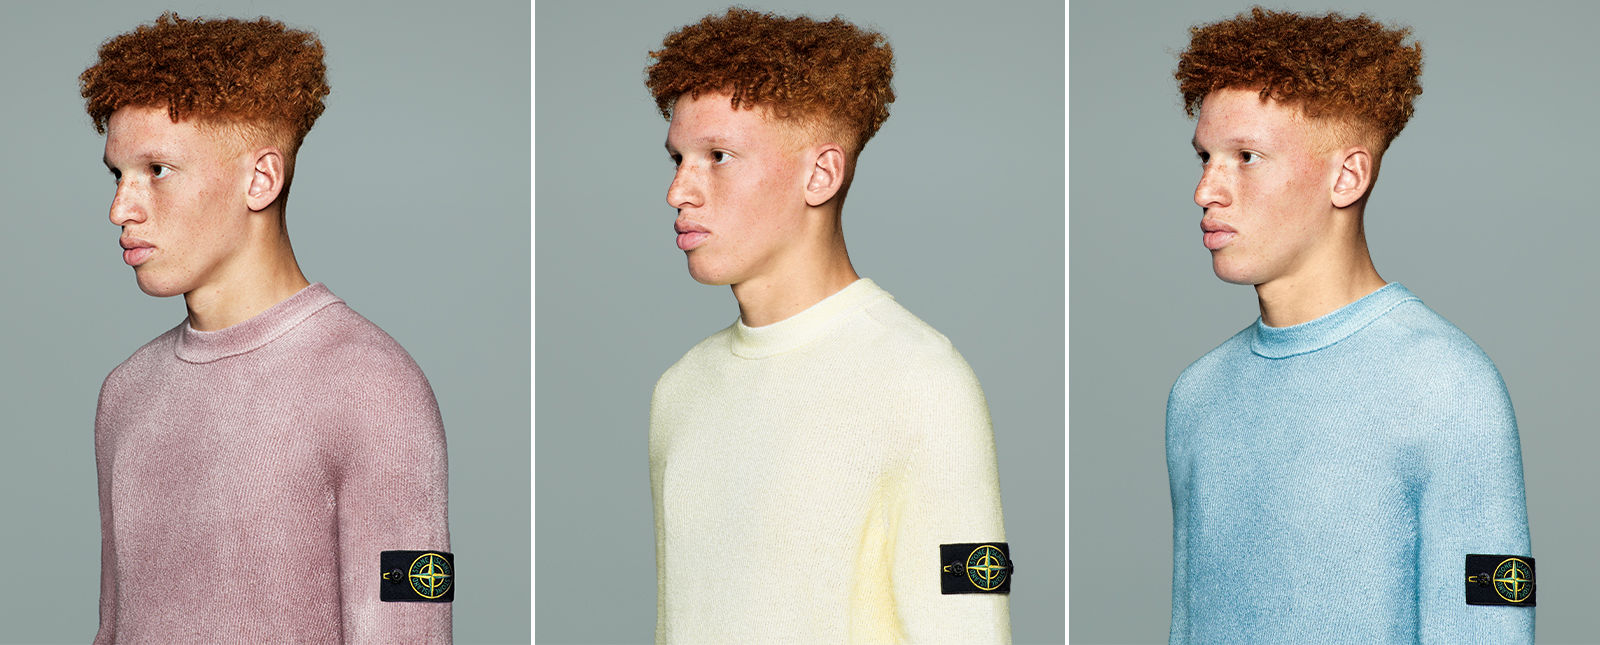 Three pictures of the same male model wearing different color variations of a crewneck sweater with the Stone Island badge on the left arm: mauve, cream, and light blue.